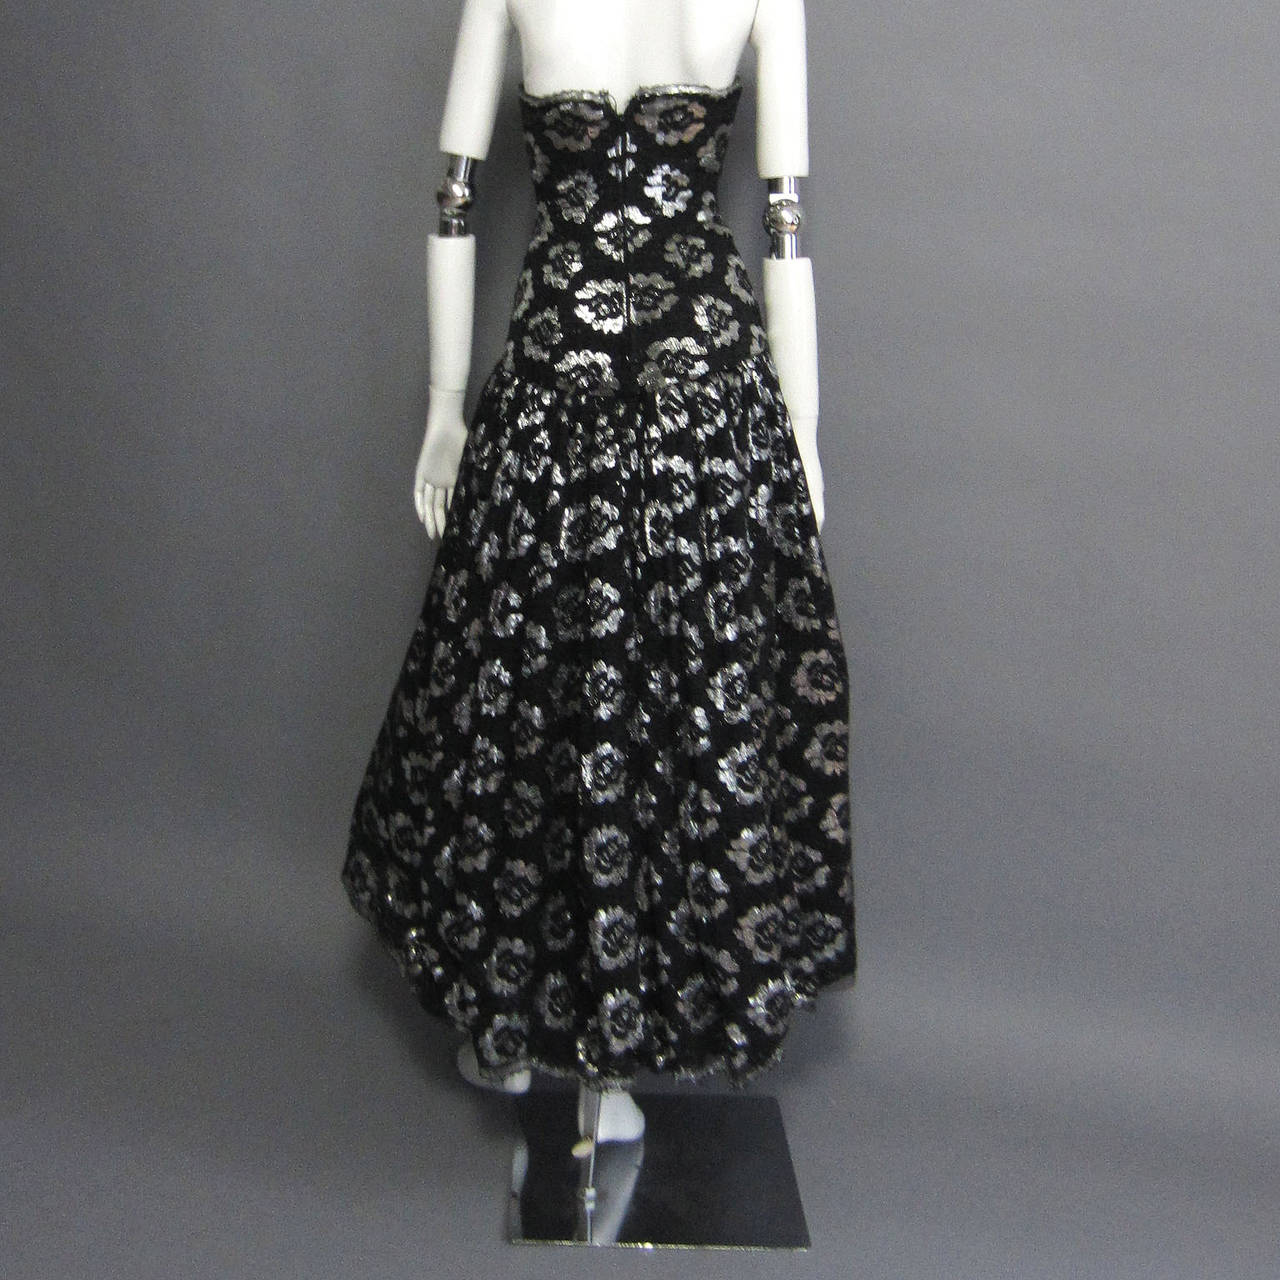 1980s LILLIE RUBIN Silver Lame Floral Lace Dress In Excellent Condition For Sale In New York, NY